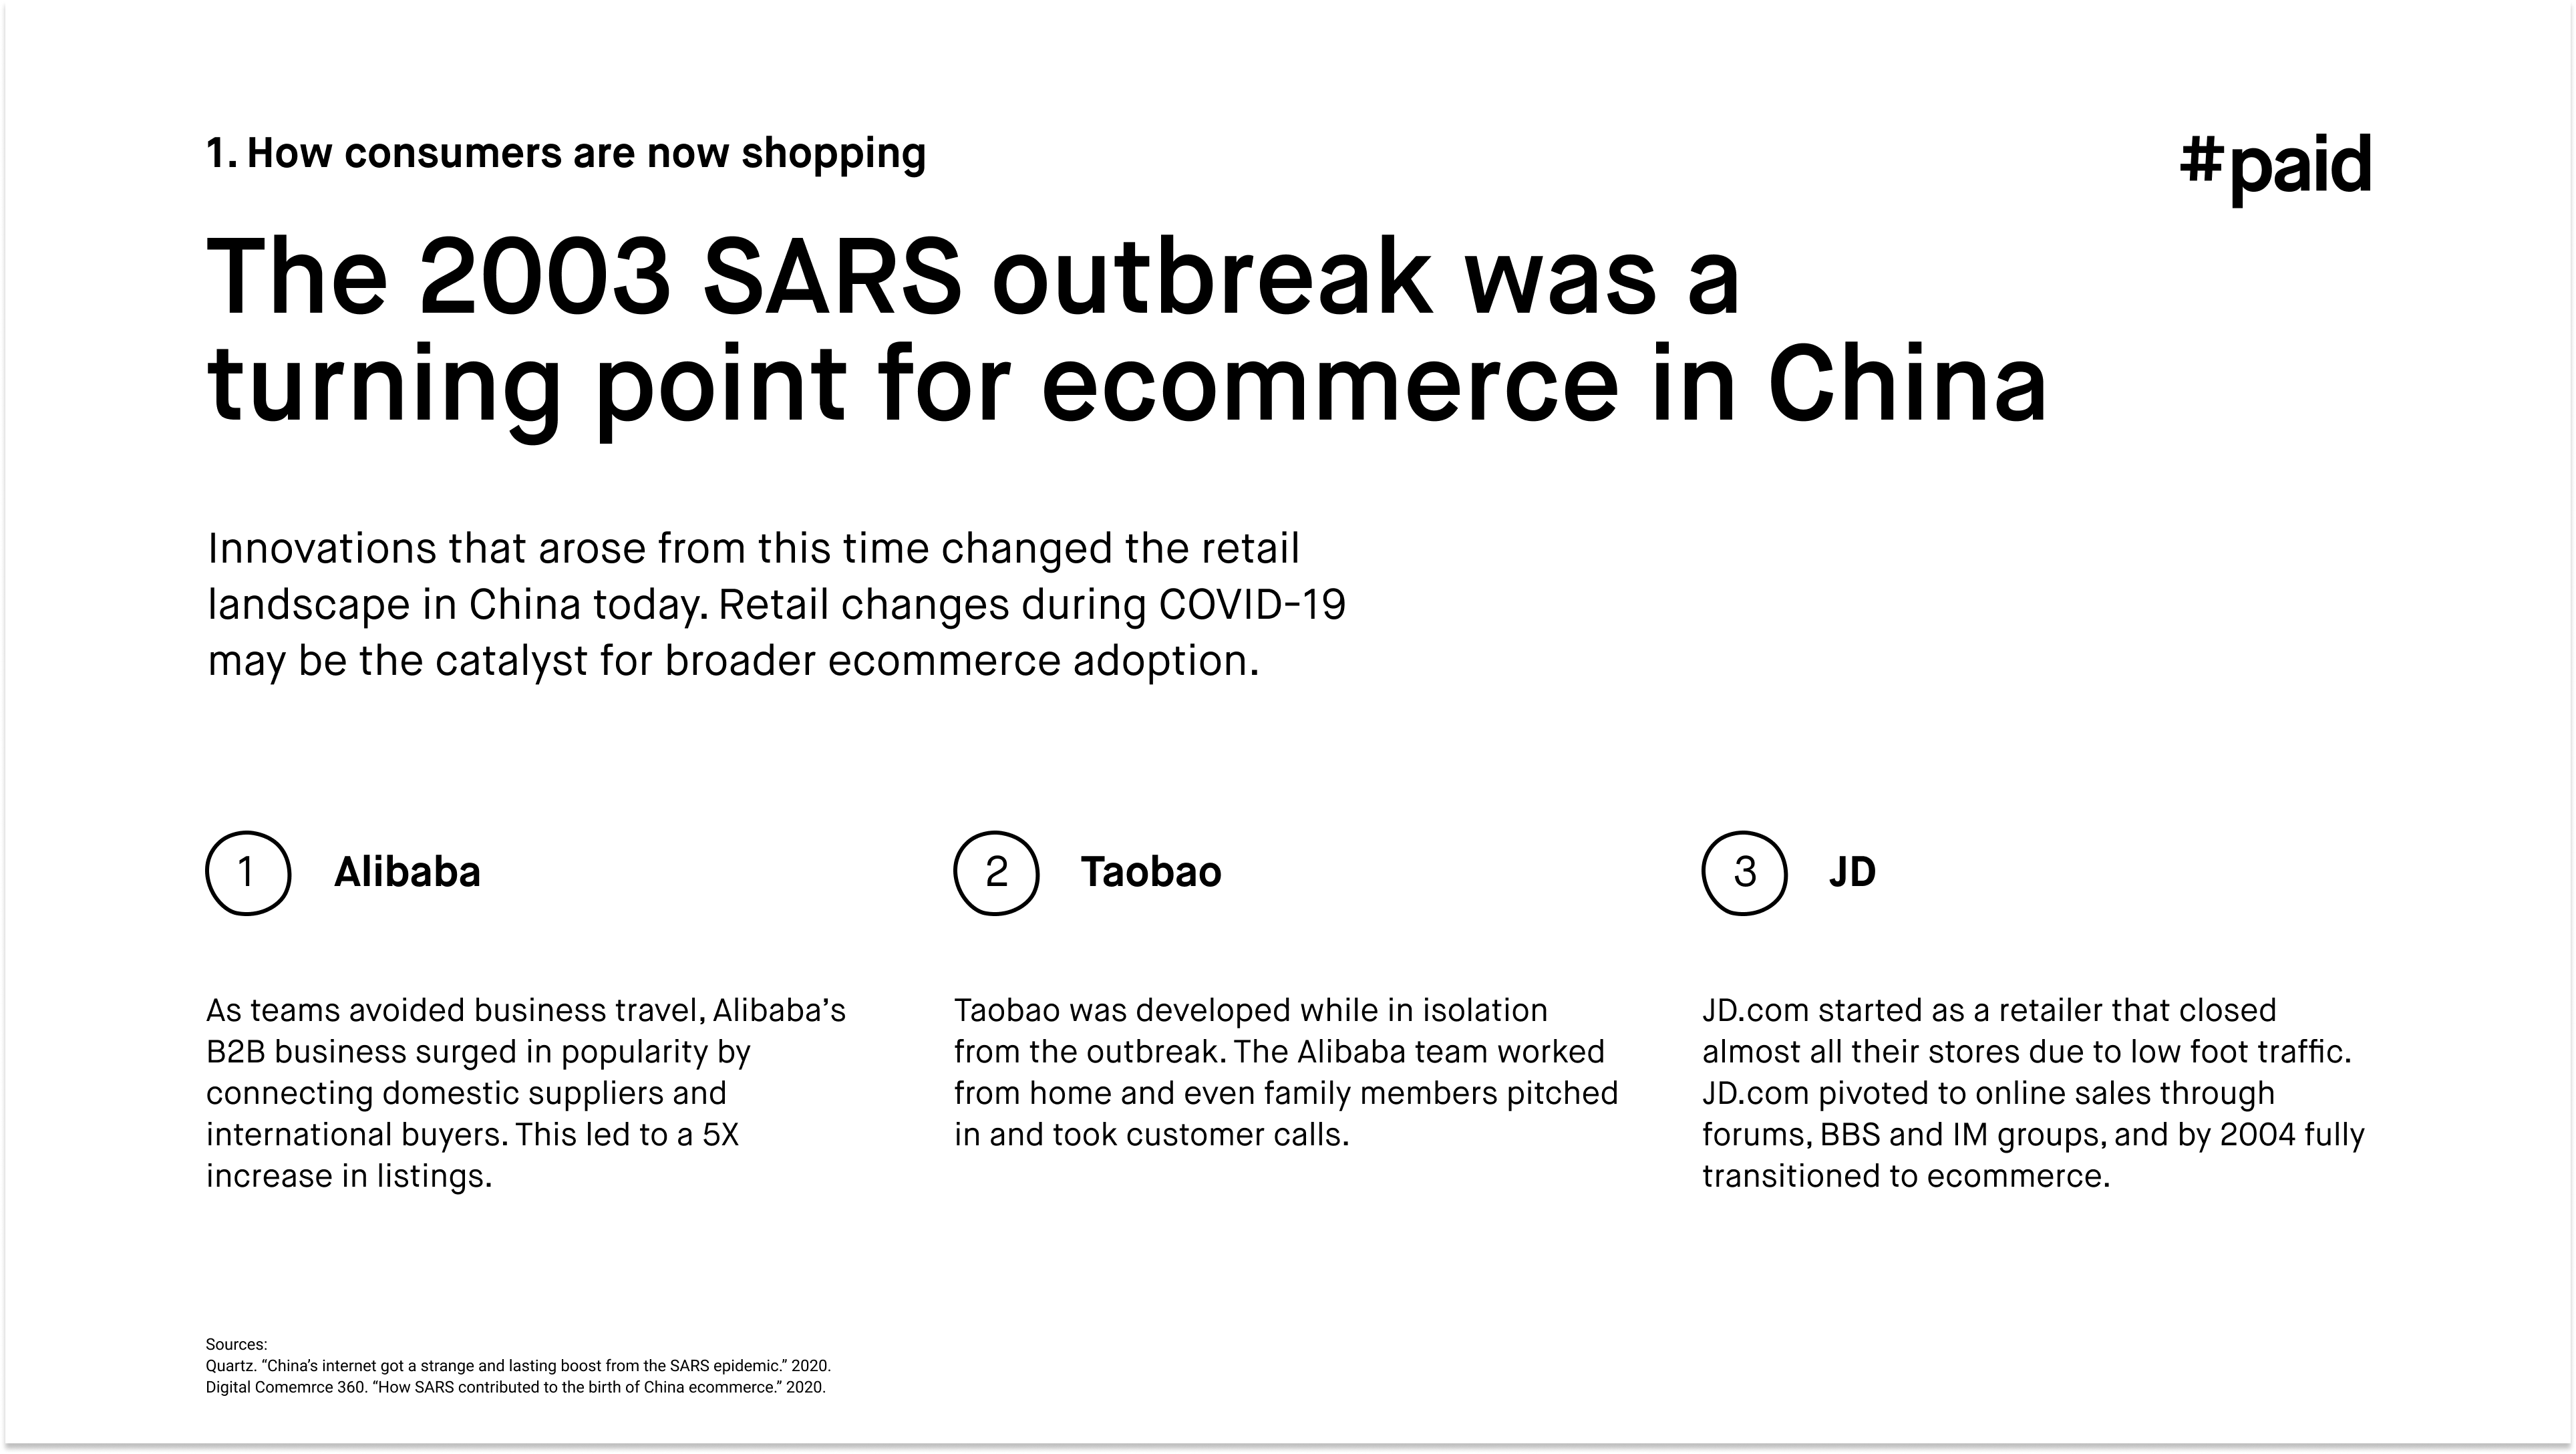 #paid_The 2003 SARS outbreak was a turning point for ecommerce in China